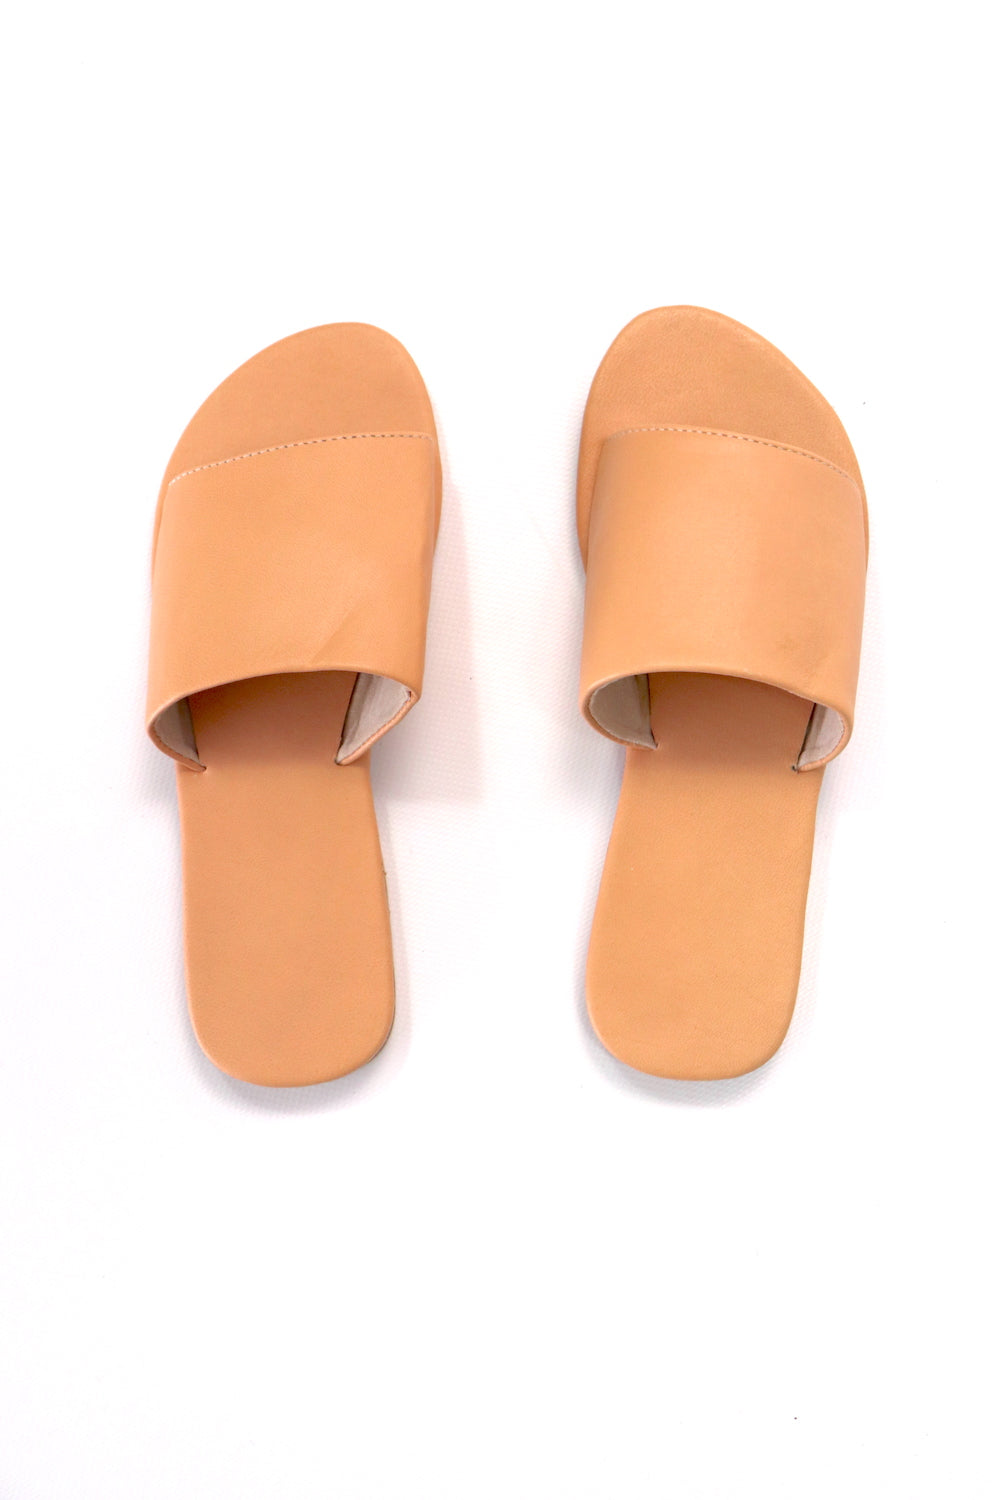 Plain Leather Slides In Skin